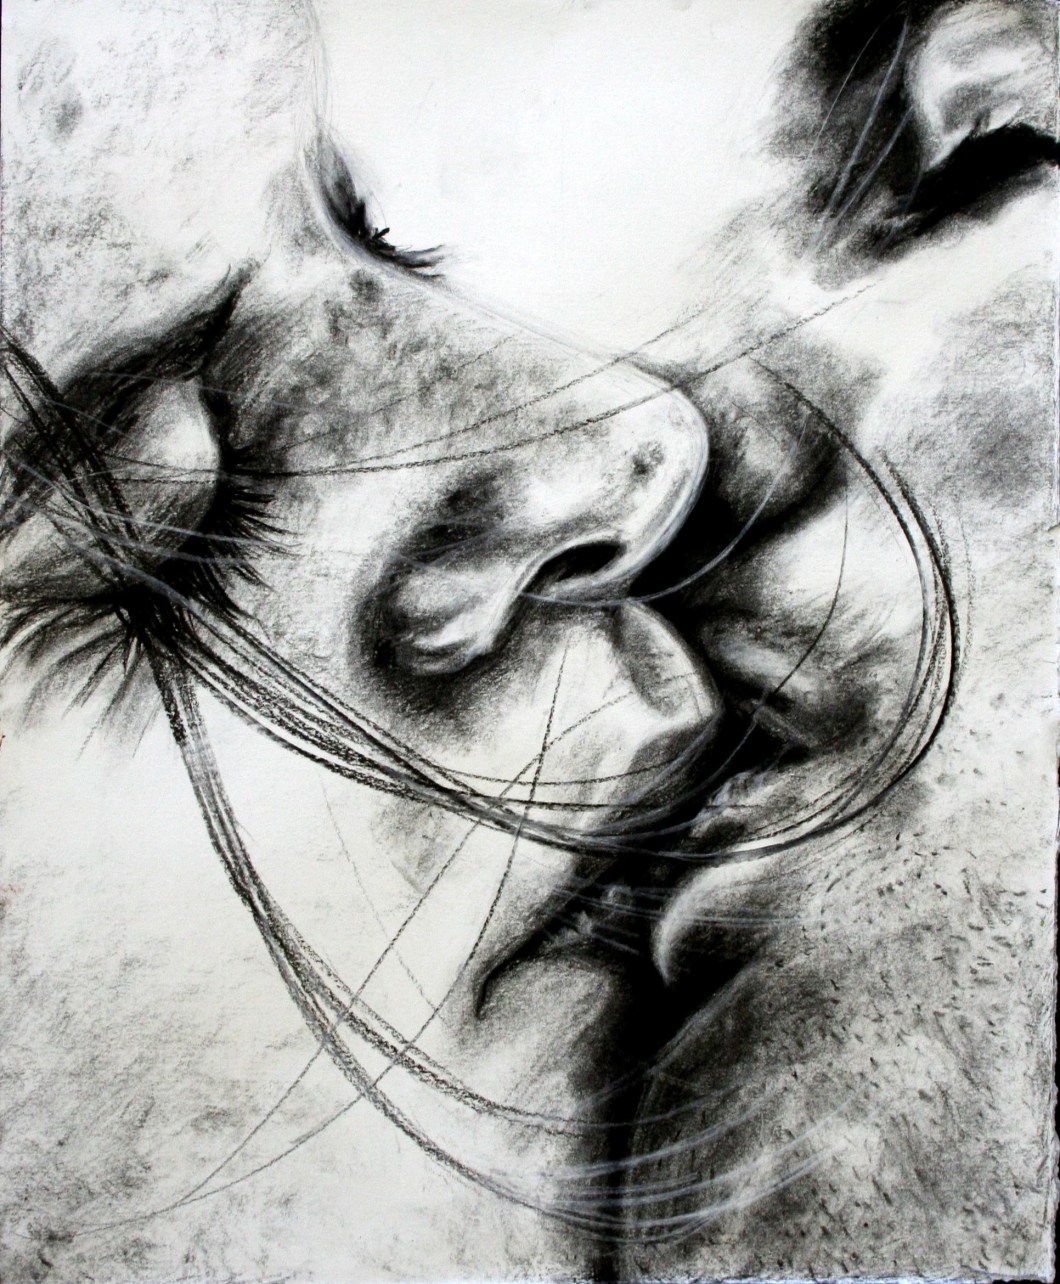 1932x2340 lip kiss pencil sketch moretessart kiss paintings search result at paintingvalley com